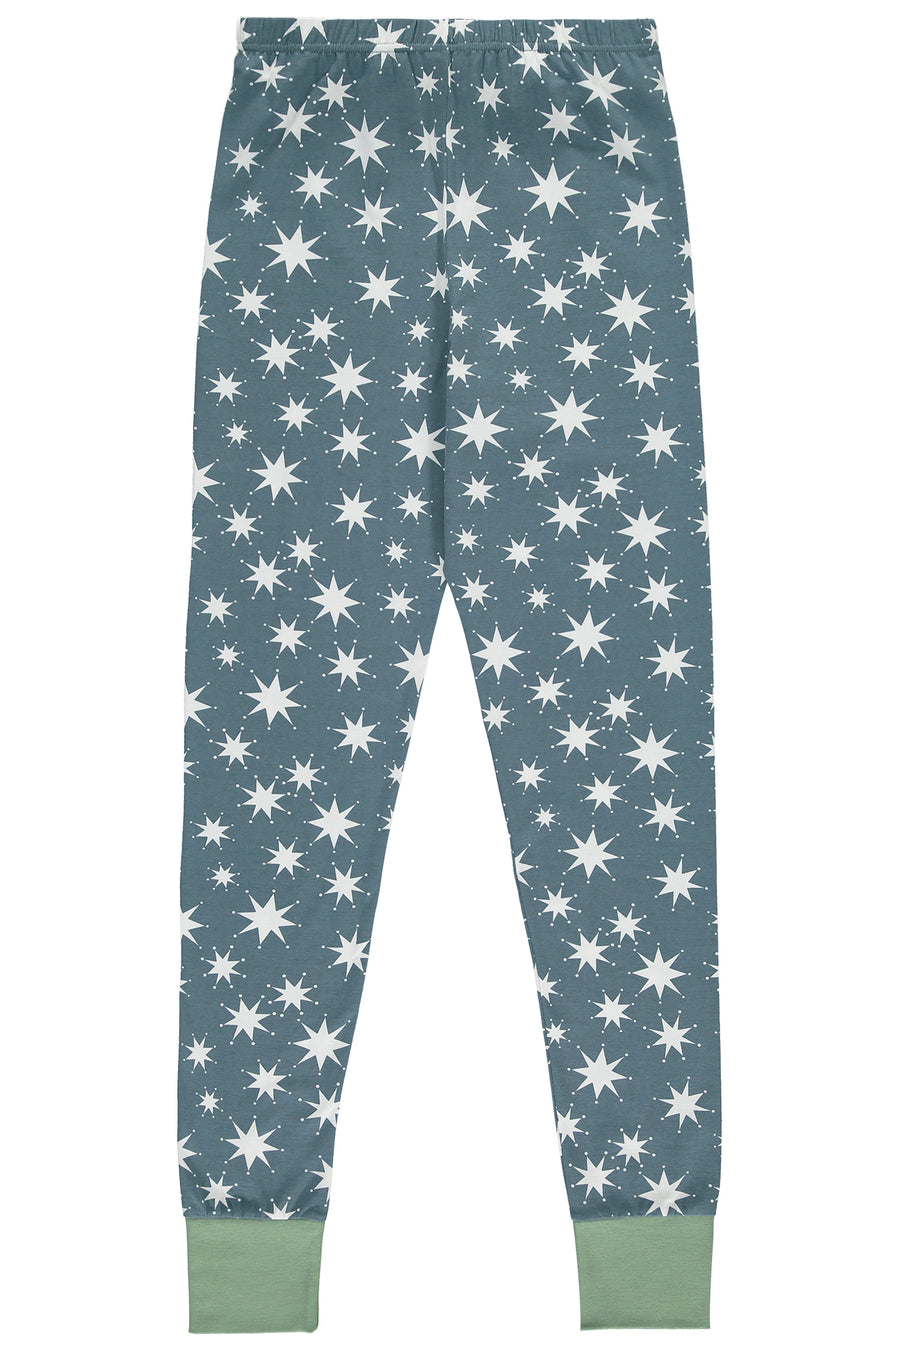 MEN'S PJ BOTTOMS - CHRISTMAS SPECIALS STARS